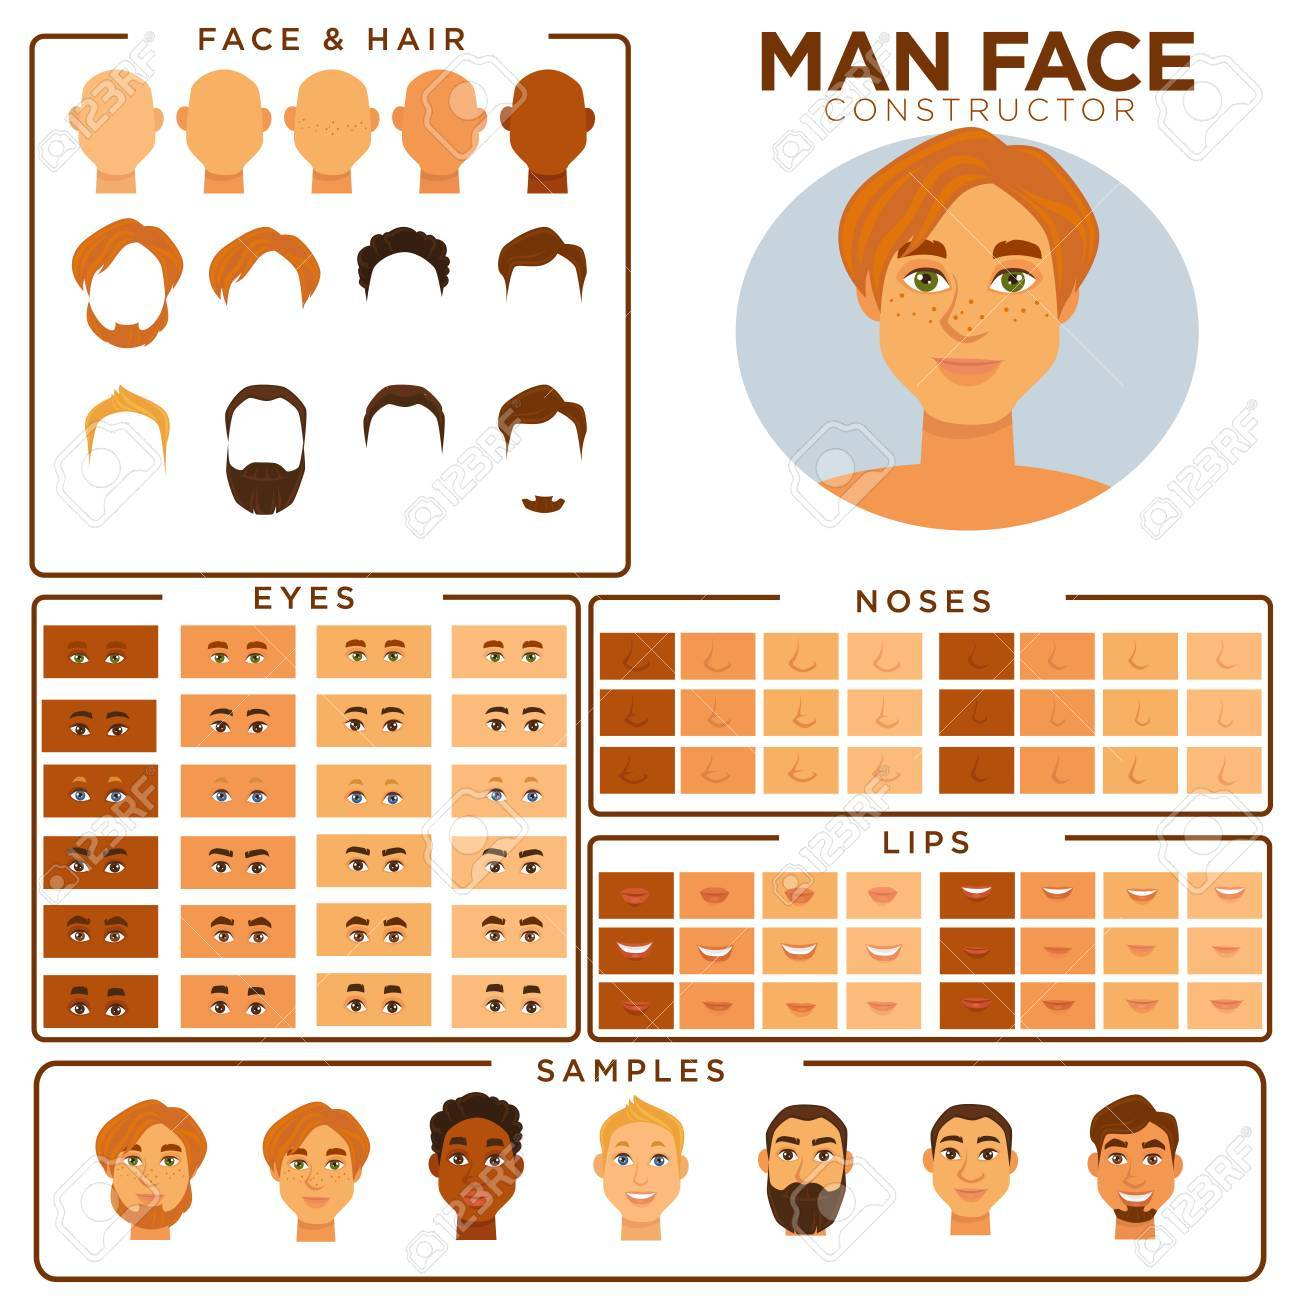 man face avatar constructor templates of male skin haircut and